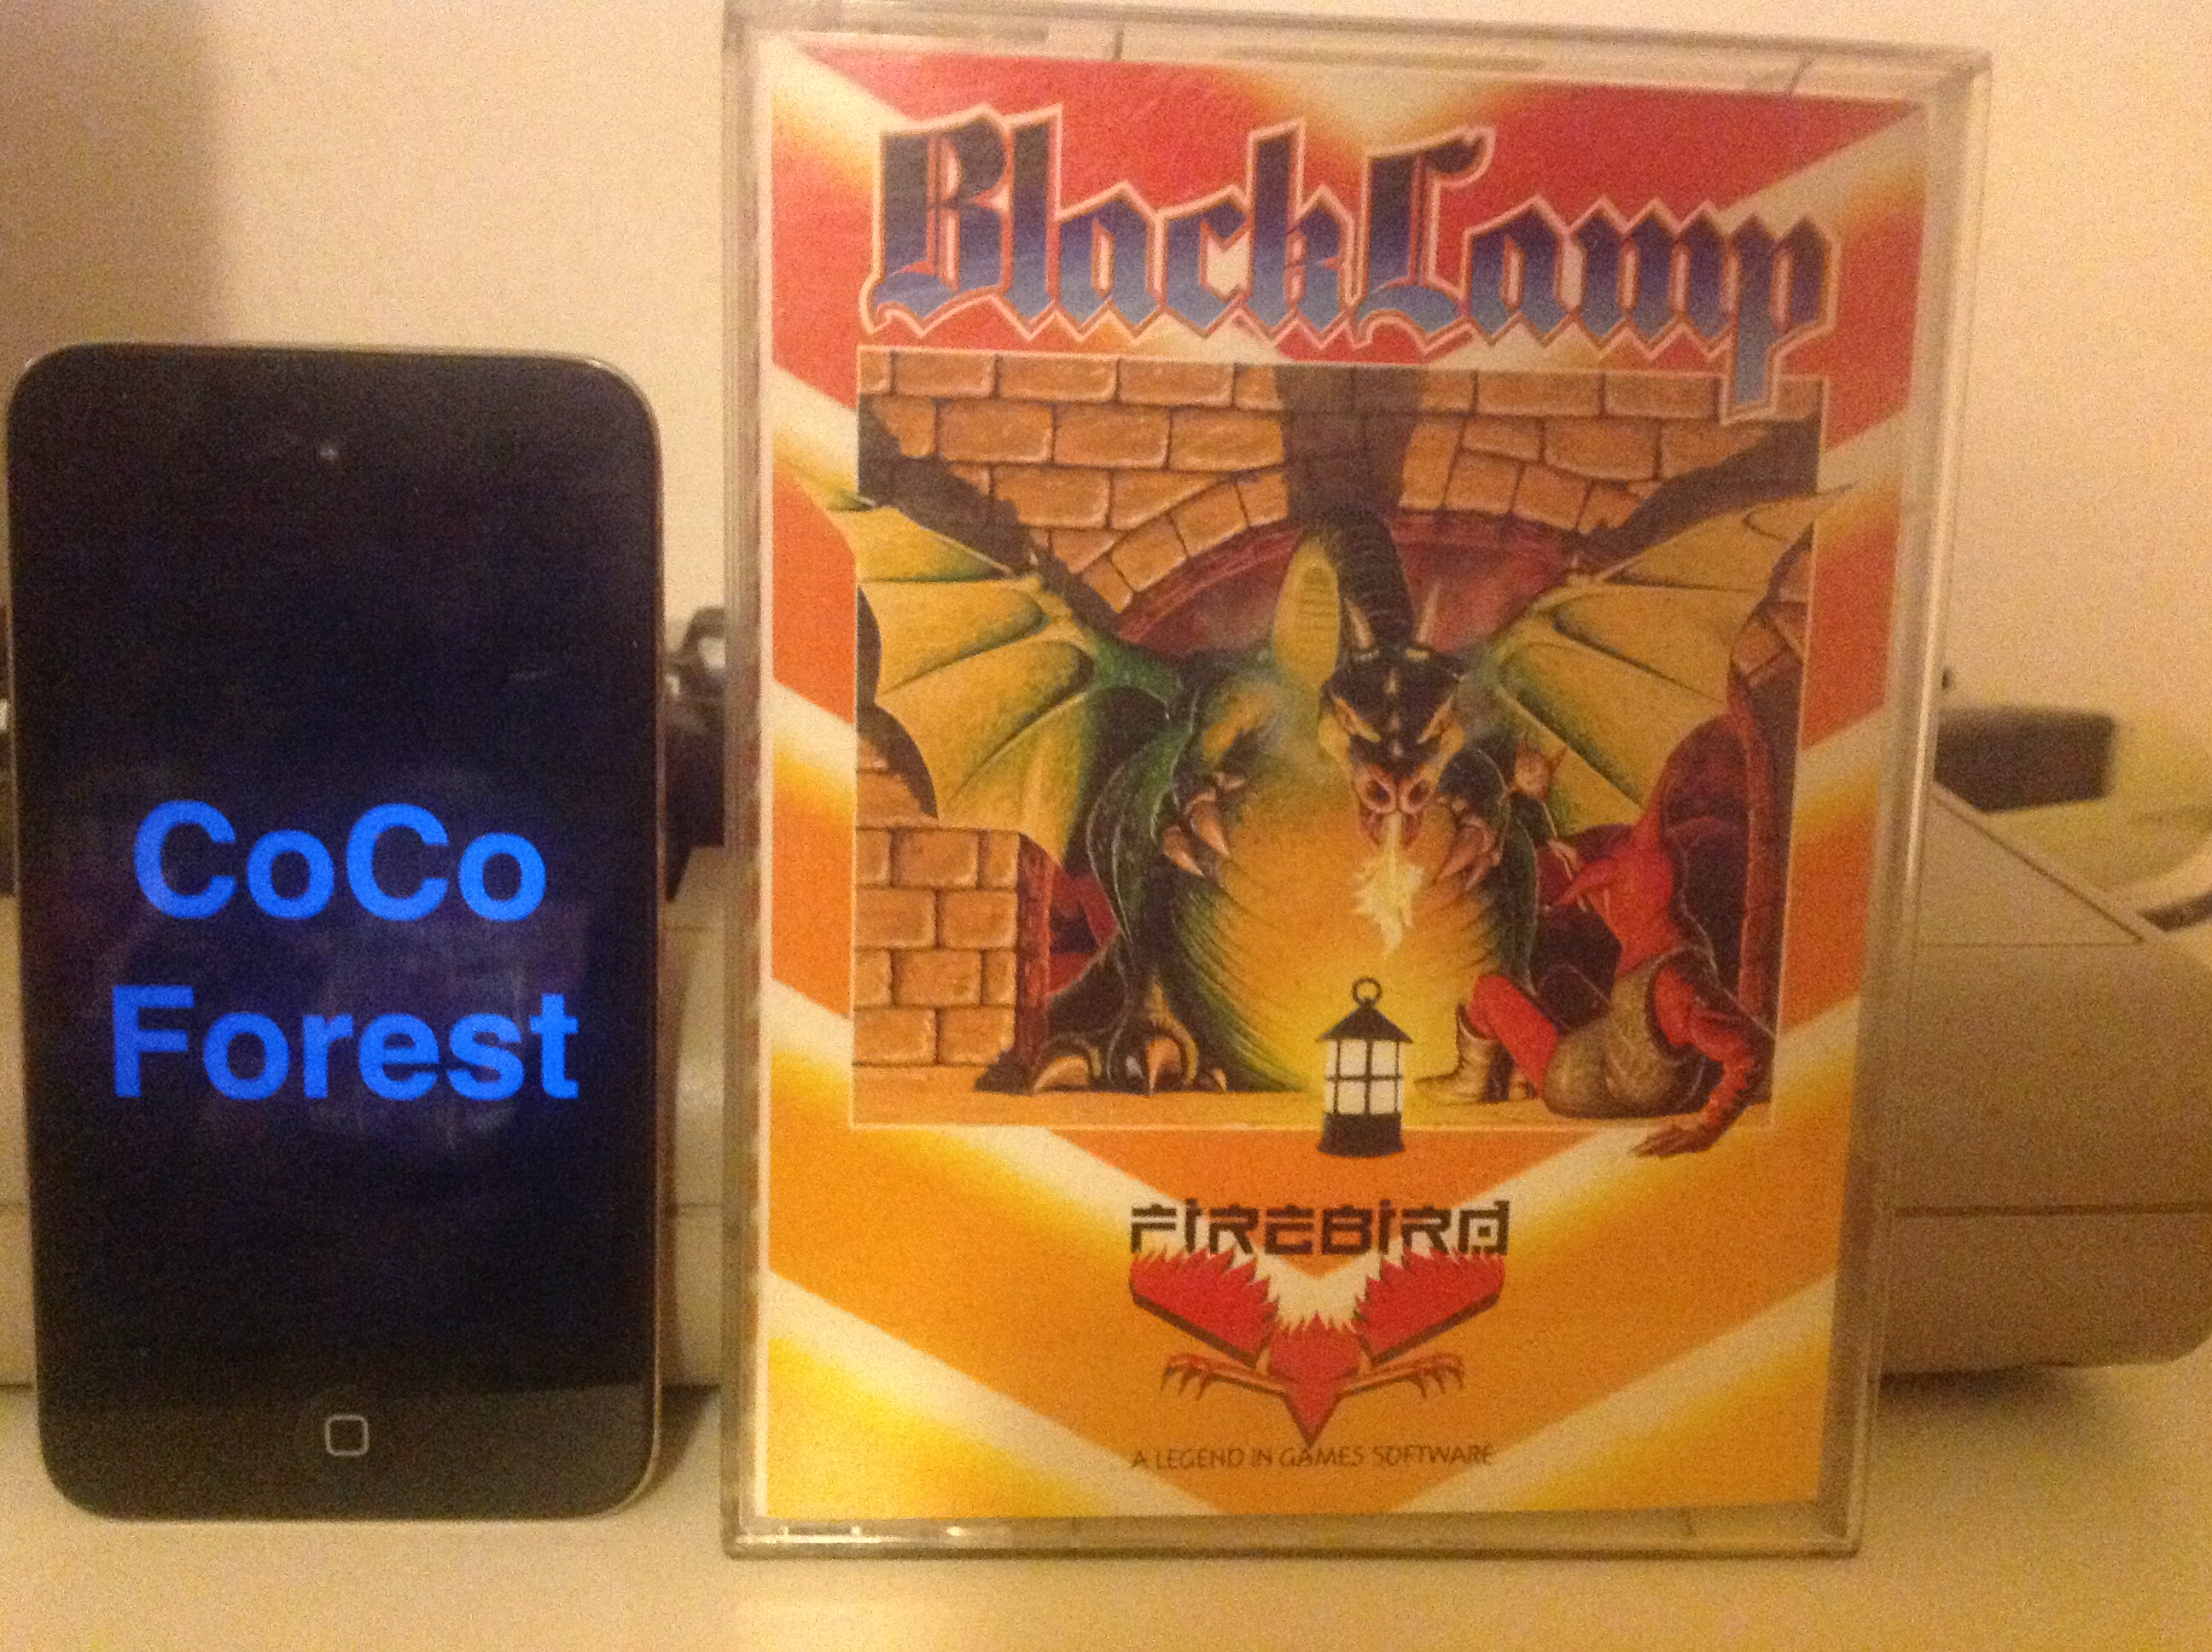 CoCoForest: Black Lamp (Commodore 64) 35,825 points on 2015-12-23 14:01:53